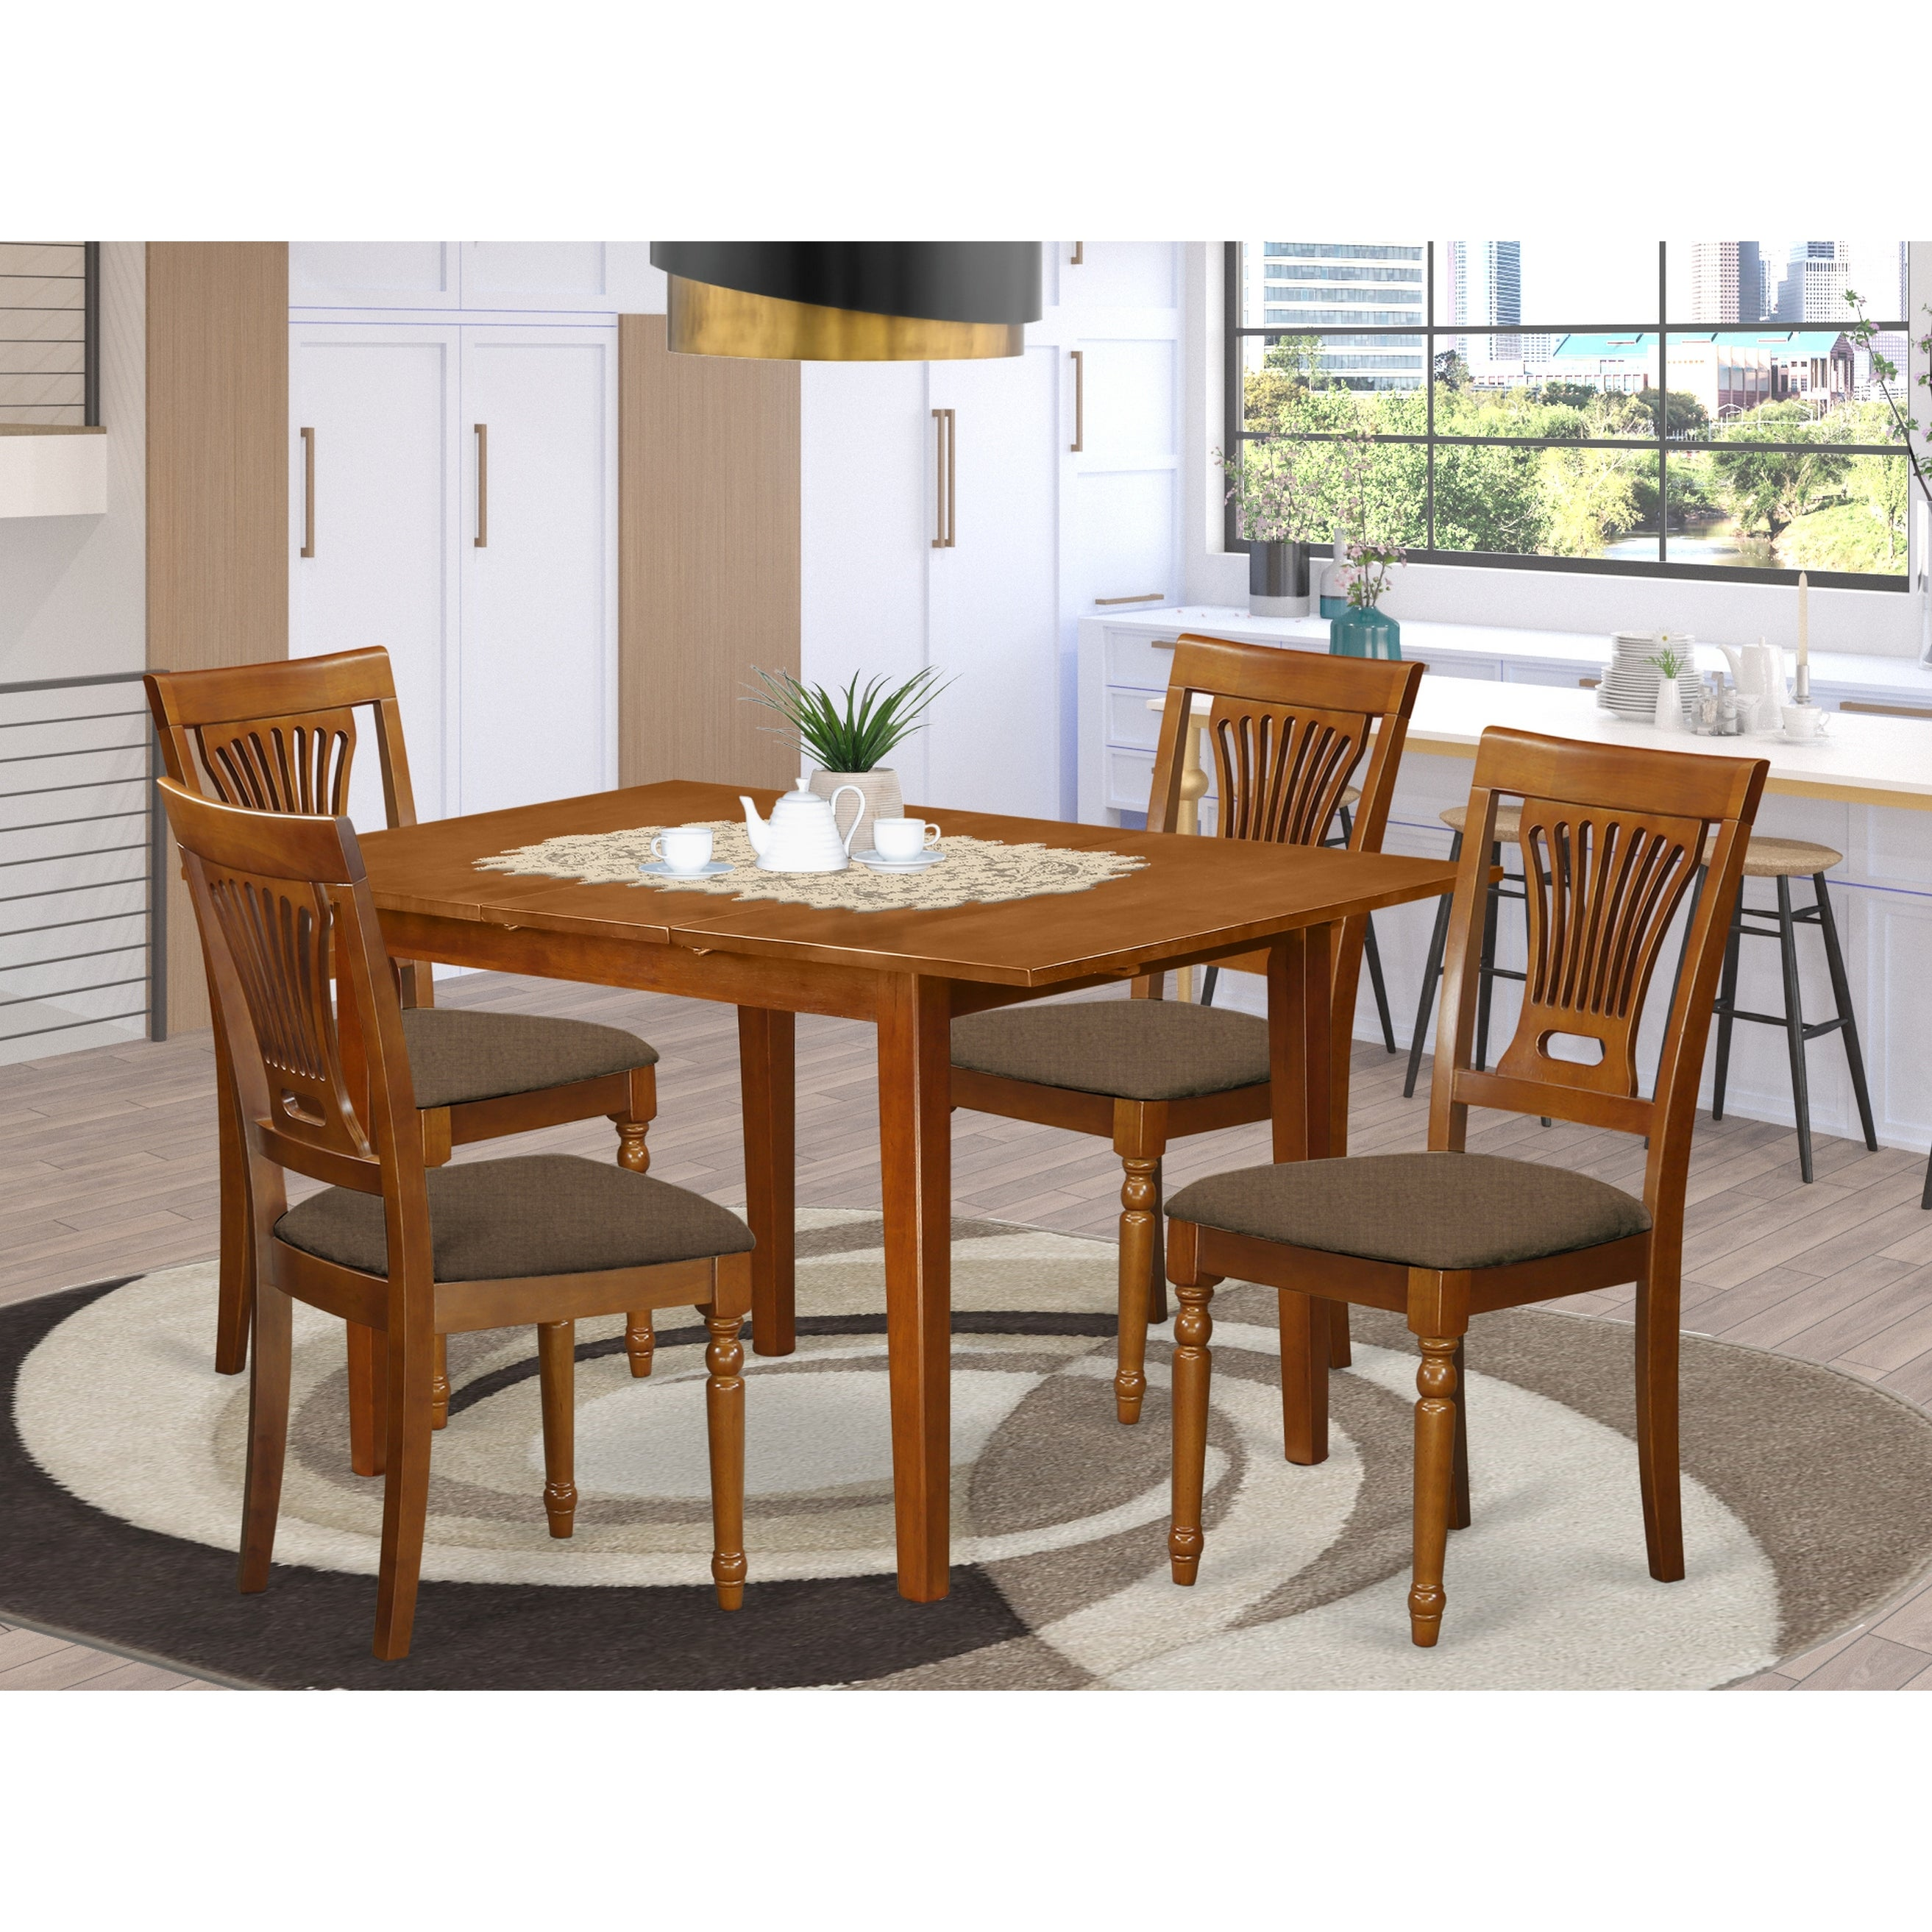 5 Piece Small Dining Table And 4 Kitchen Chairs Overstock 10296471 Mlpl5 Sbr C